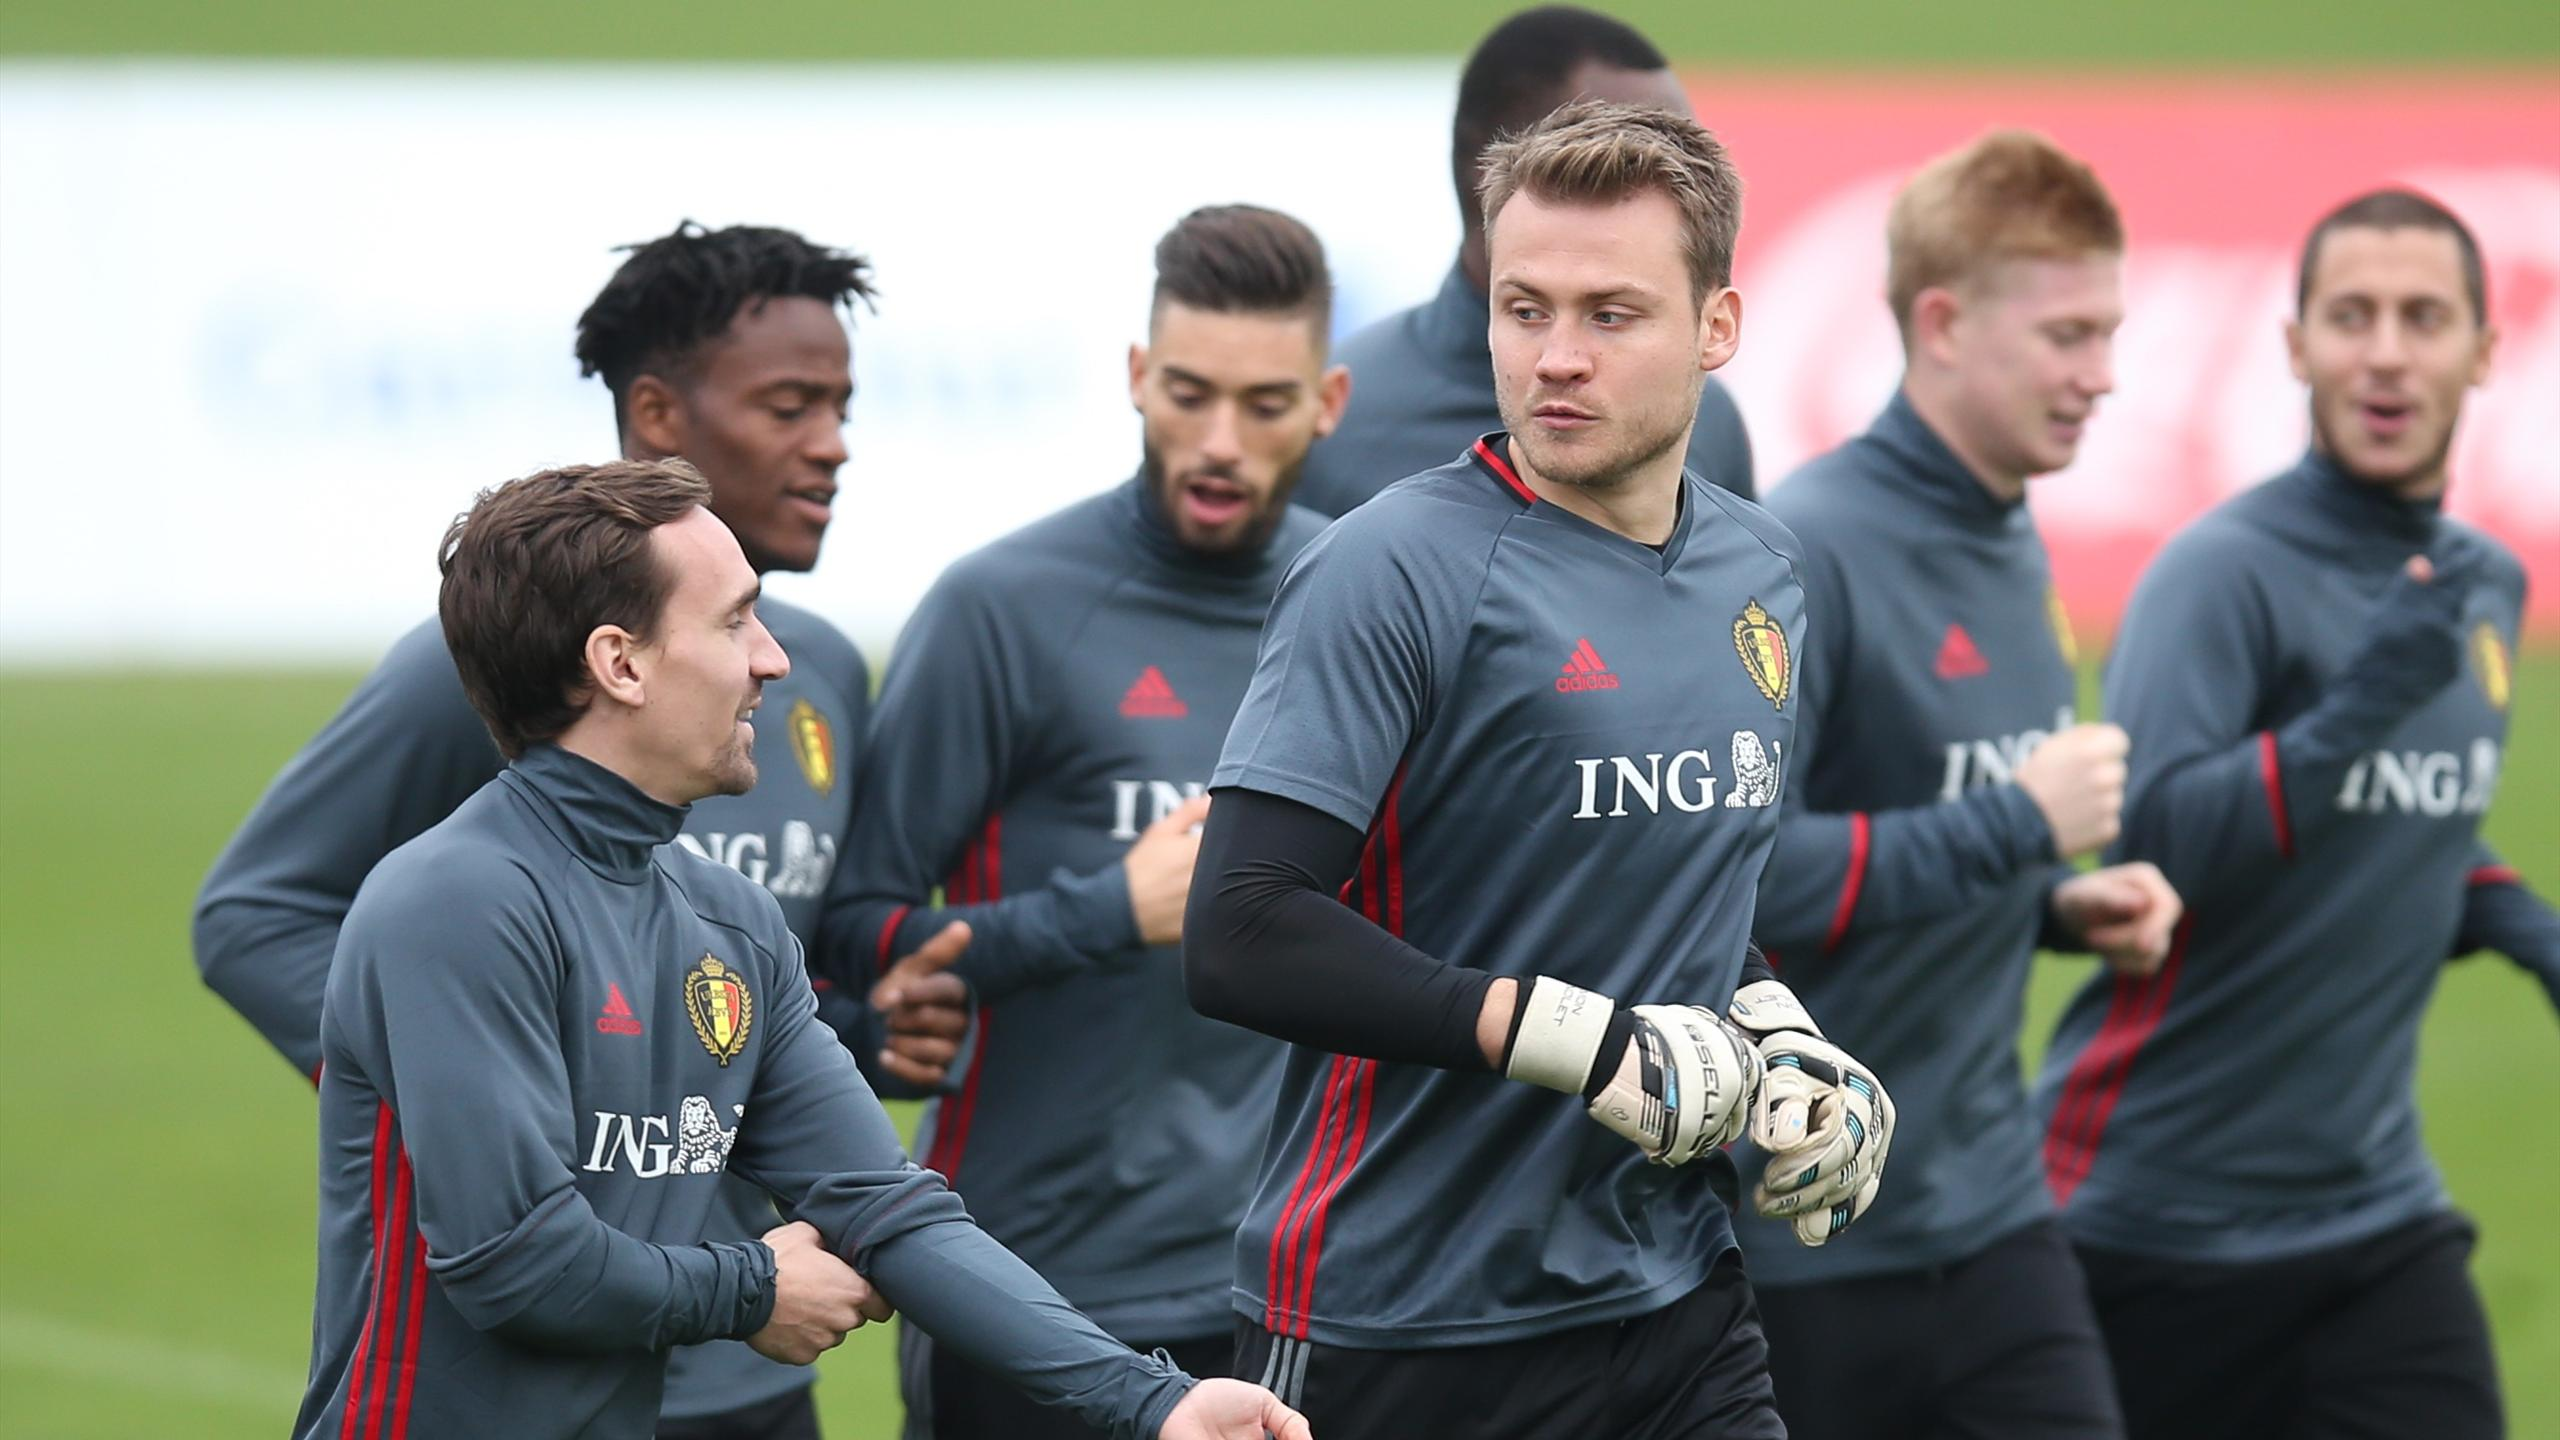 Belgium's national team midfielder Sven Kums (L) and goalkeeper Simon Mignolet (C) take part in a training sesion of the Red Devils